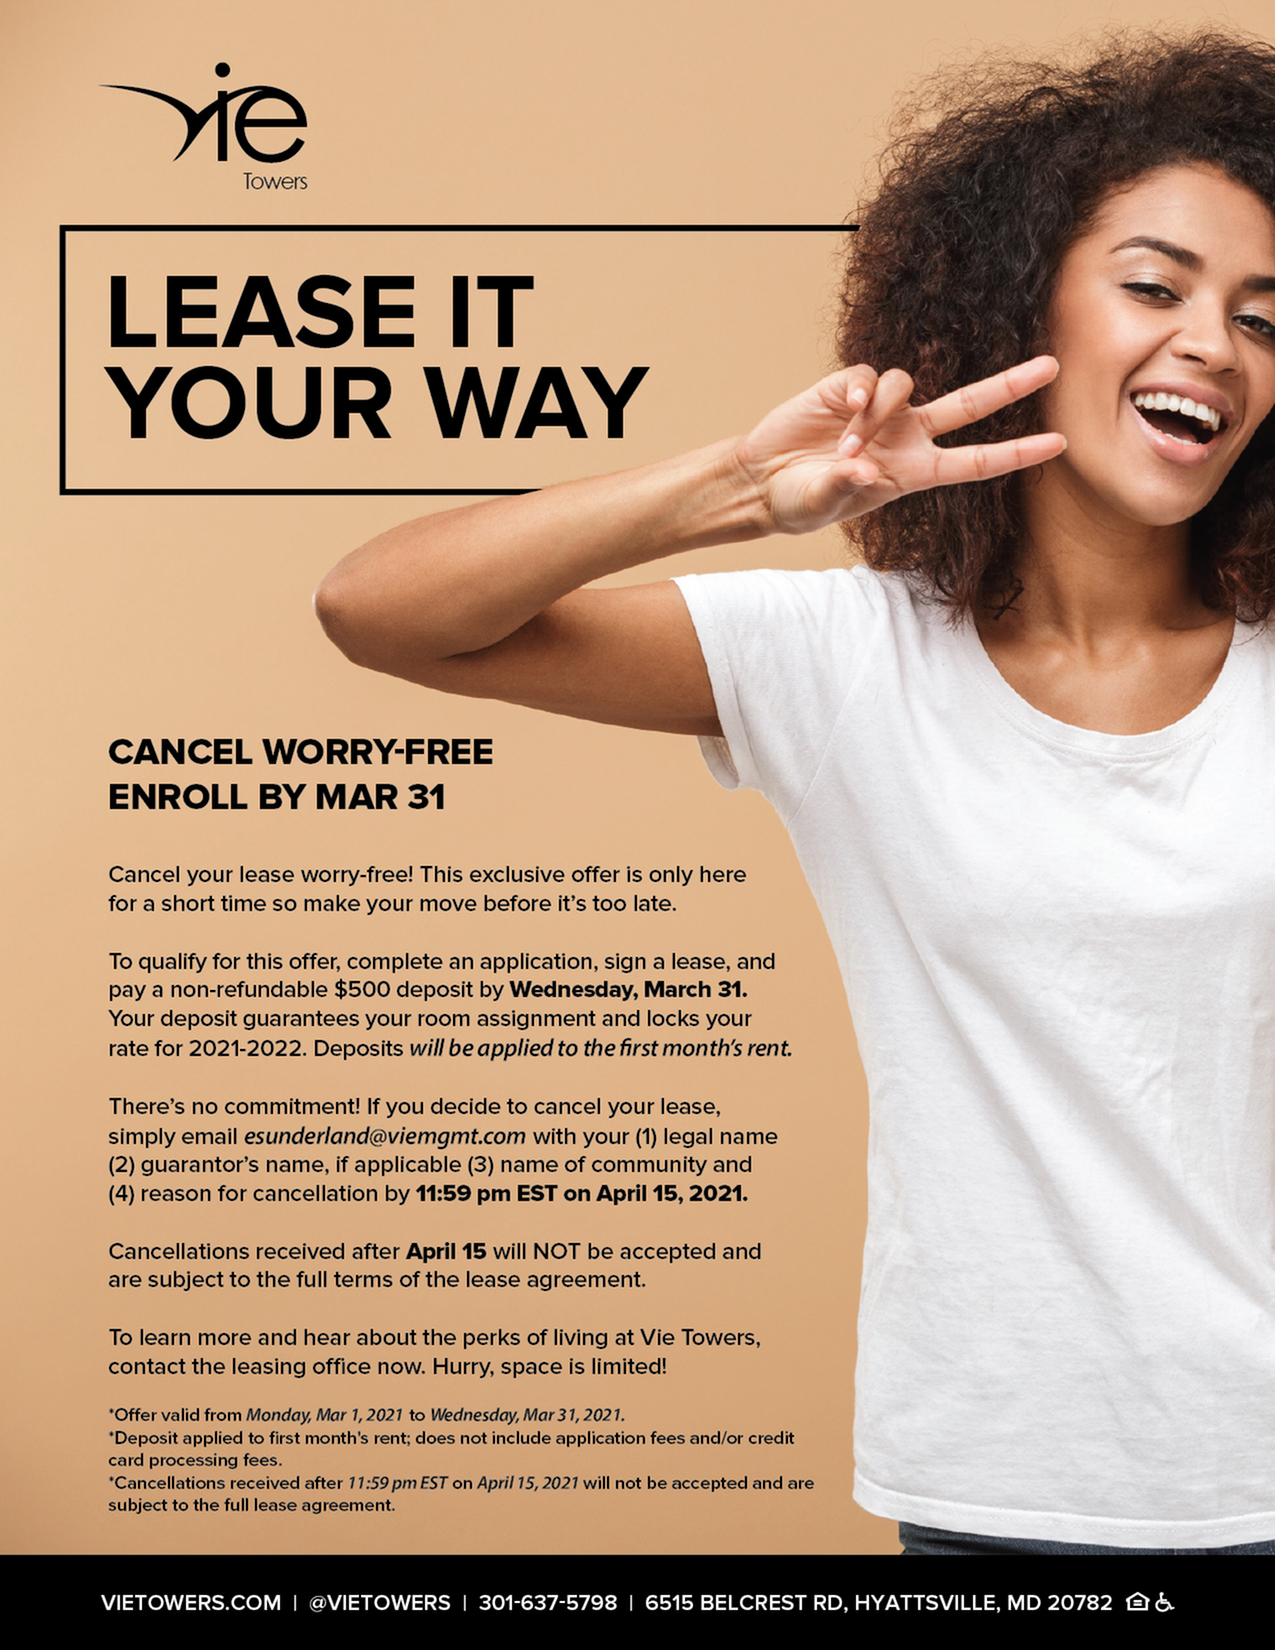 CANCEL YOUR LEASE WORRY FREE | ENROLL BY MAR 31-image